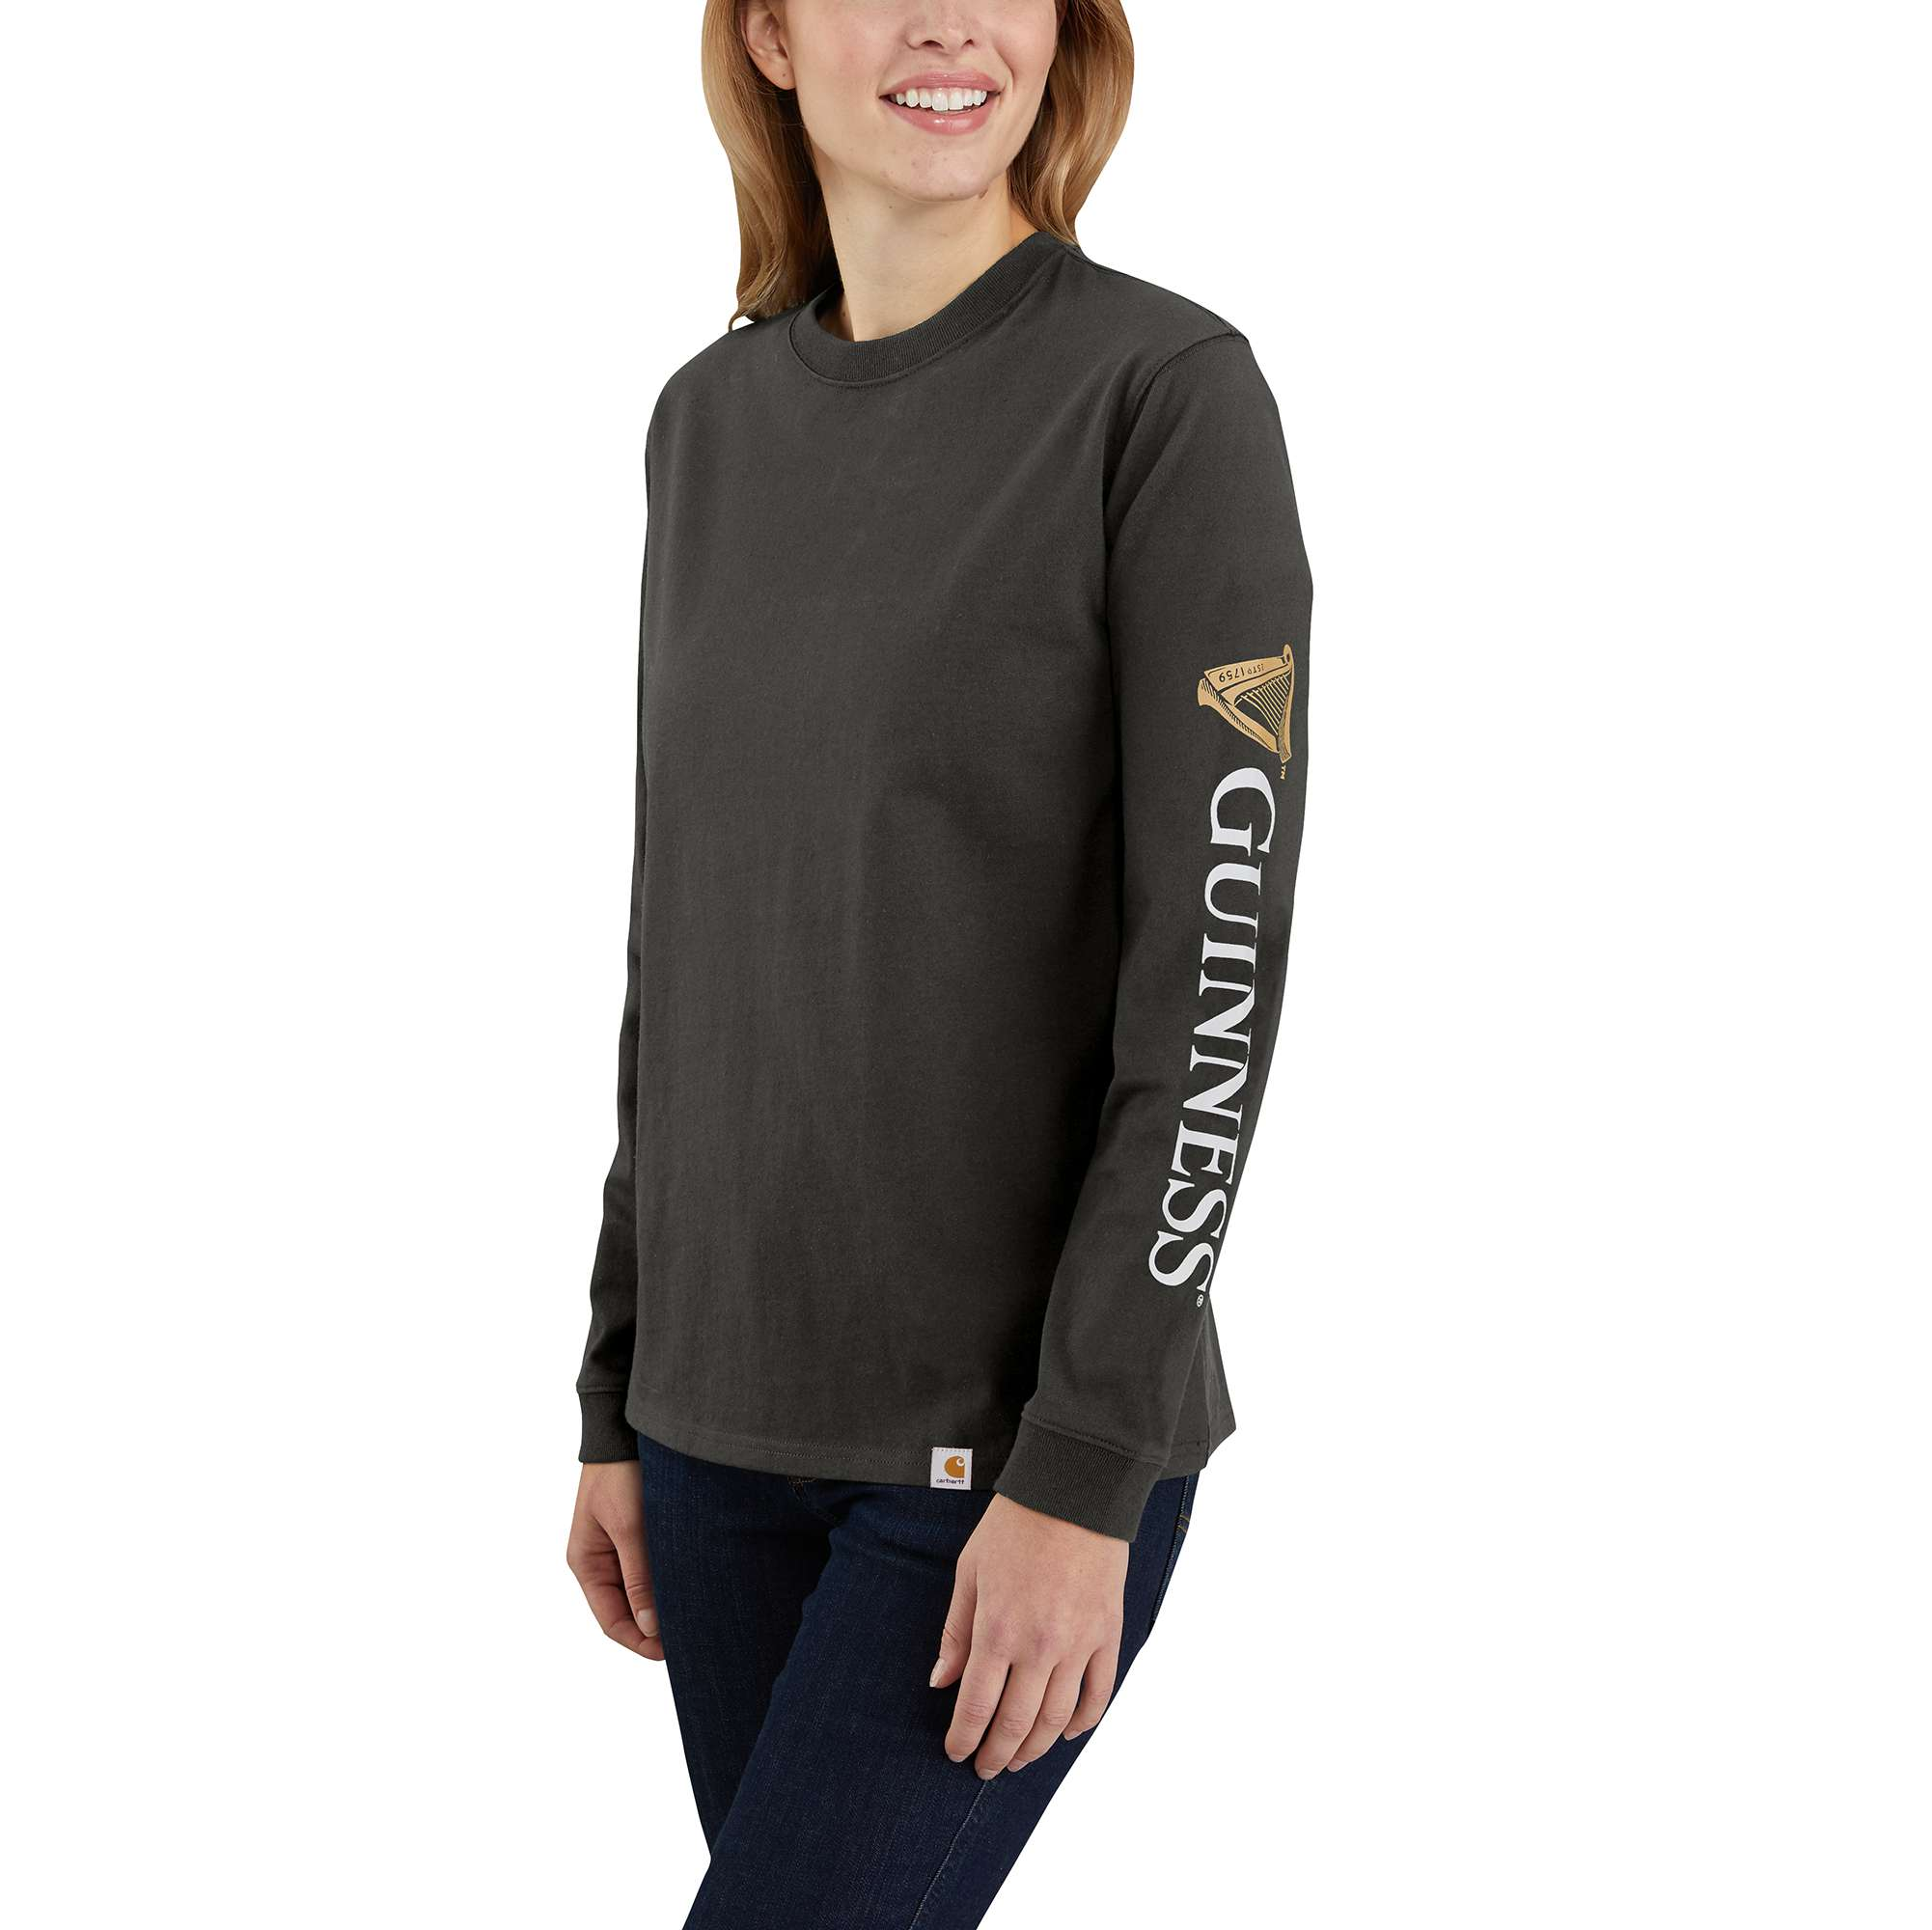 Original Fit Heavyweight Guinness Graphic Long-Sleeve T-Shirt